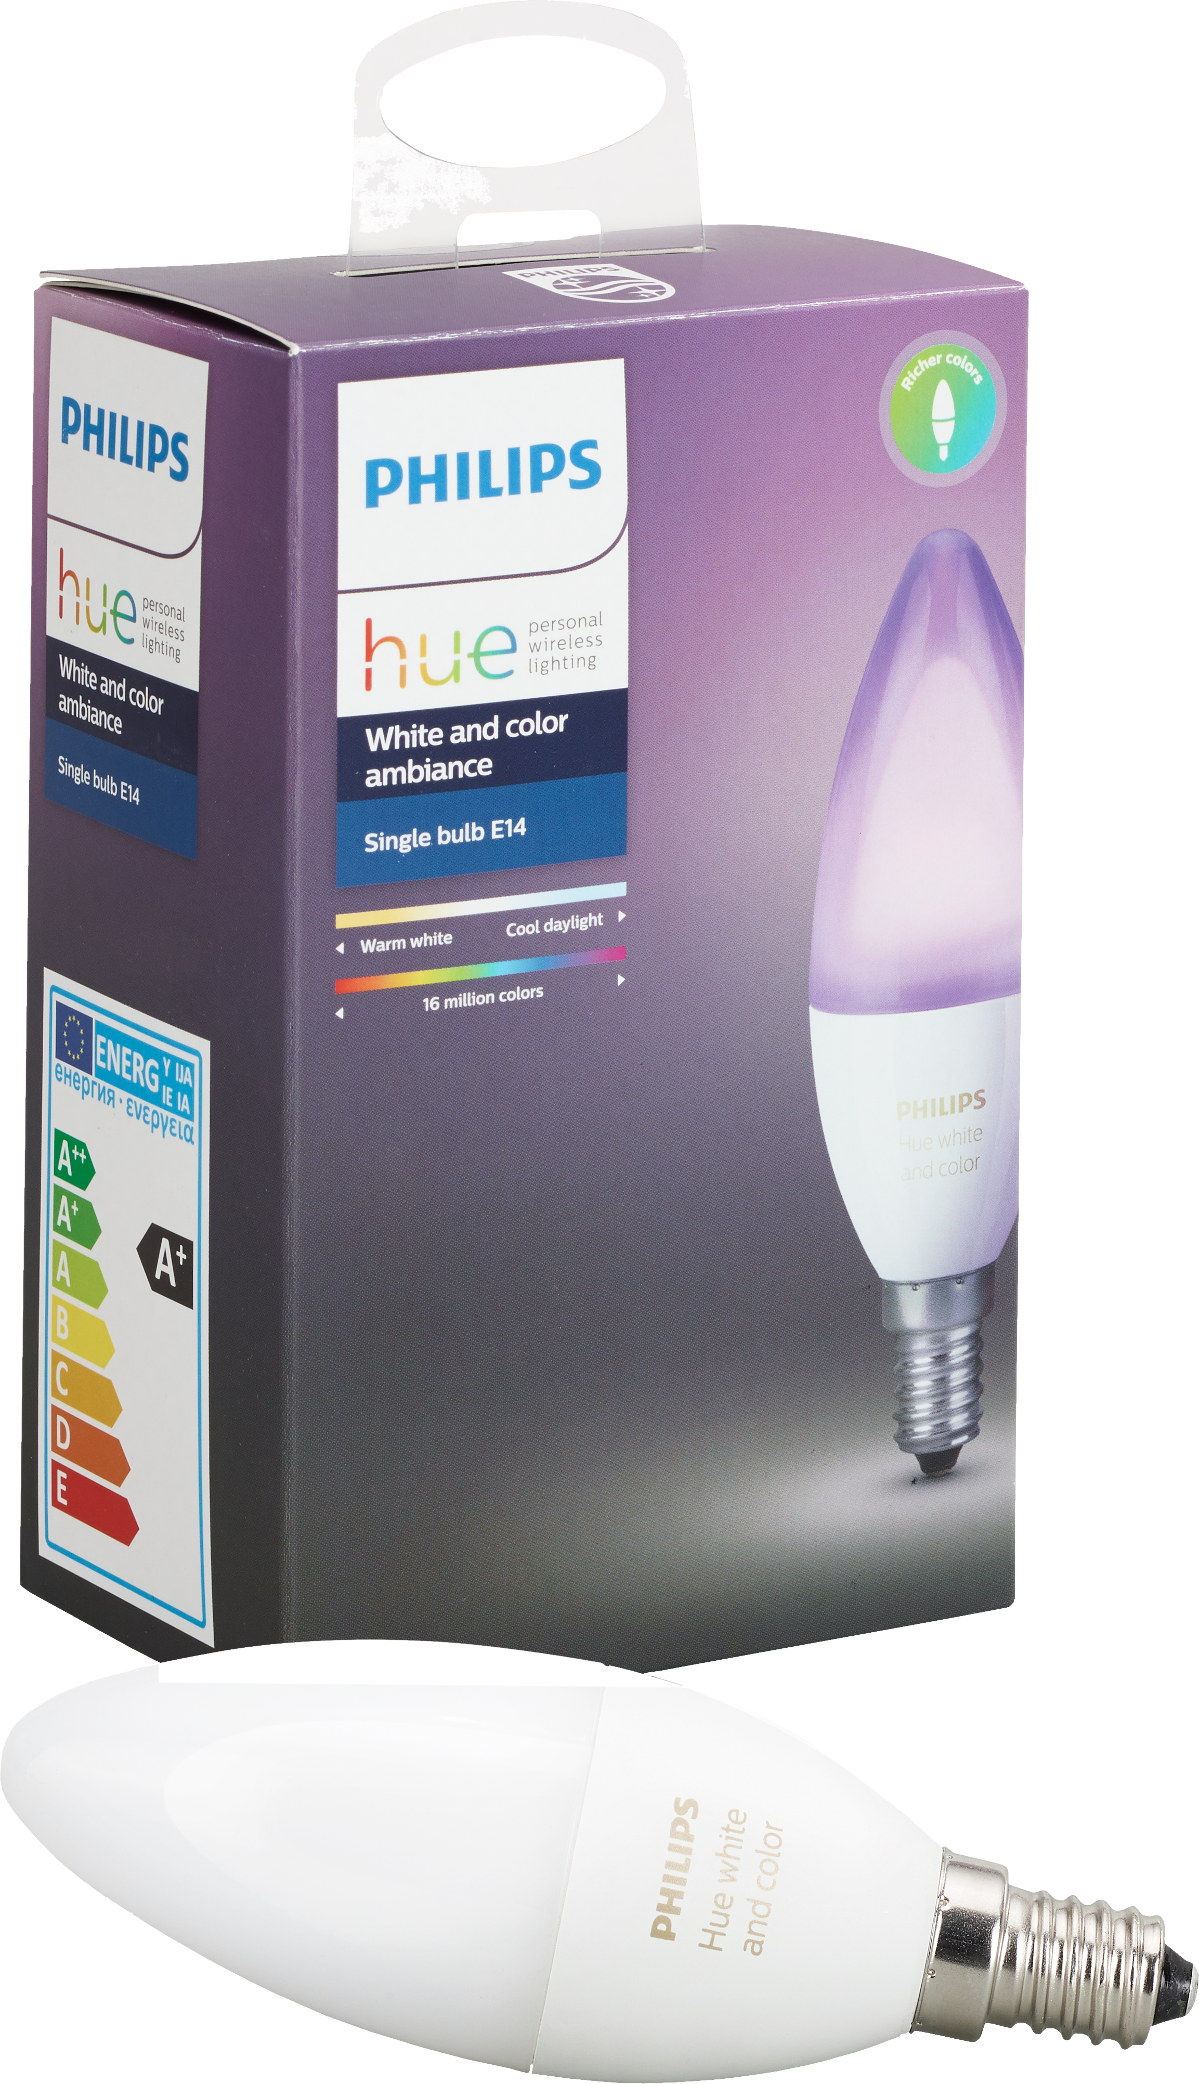 philips hue e14 erweiterung rgbw 1 st ck weiss und. Black Bedroom Furniture Sets. Home Design Ideas